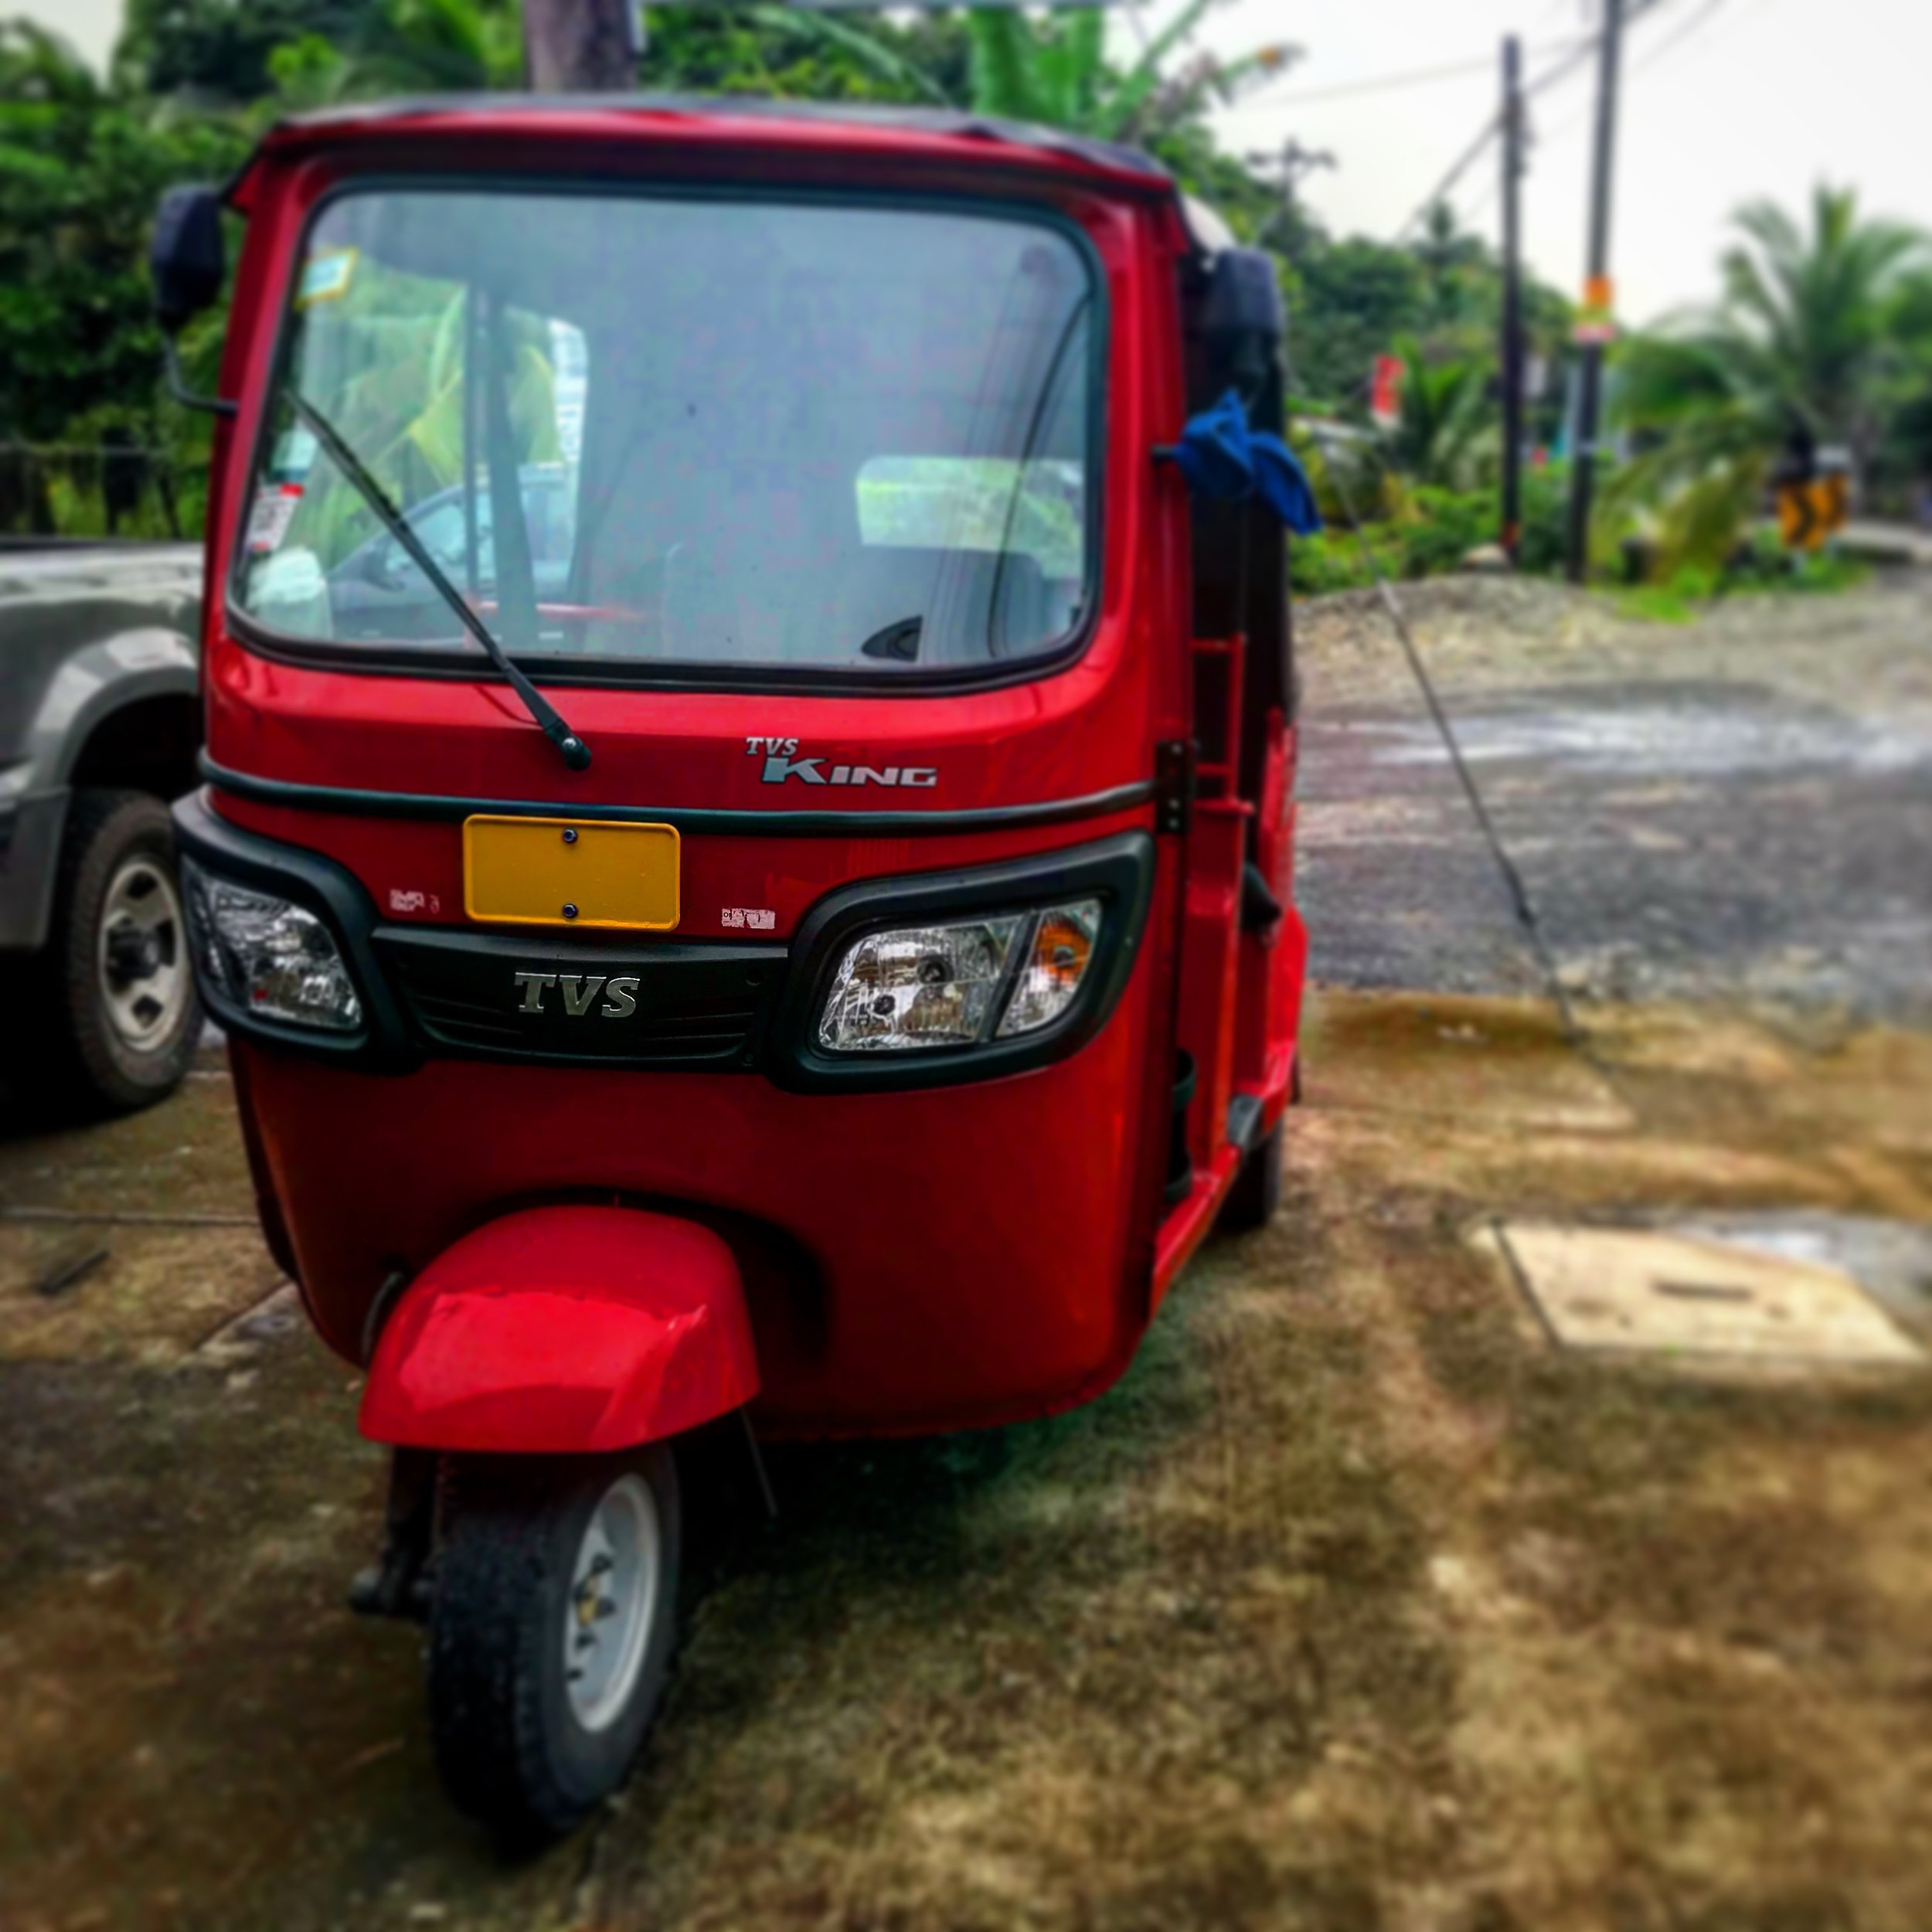 Don't Drink and Drive. Take a Coco Taxi instead. - This red coco taxi is one of the most unusual cabs in Costa Rica.